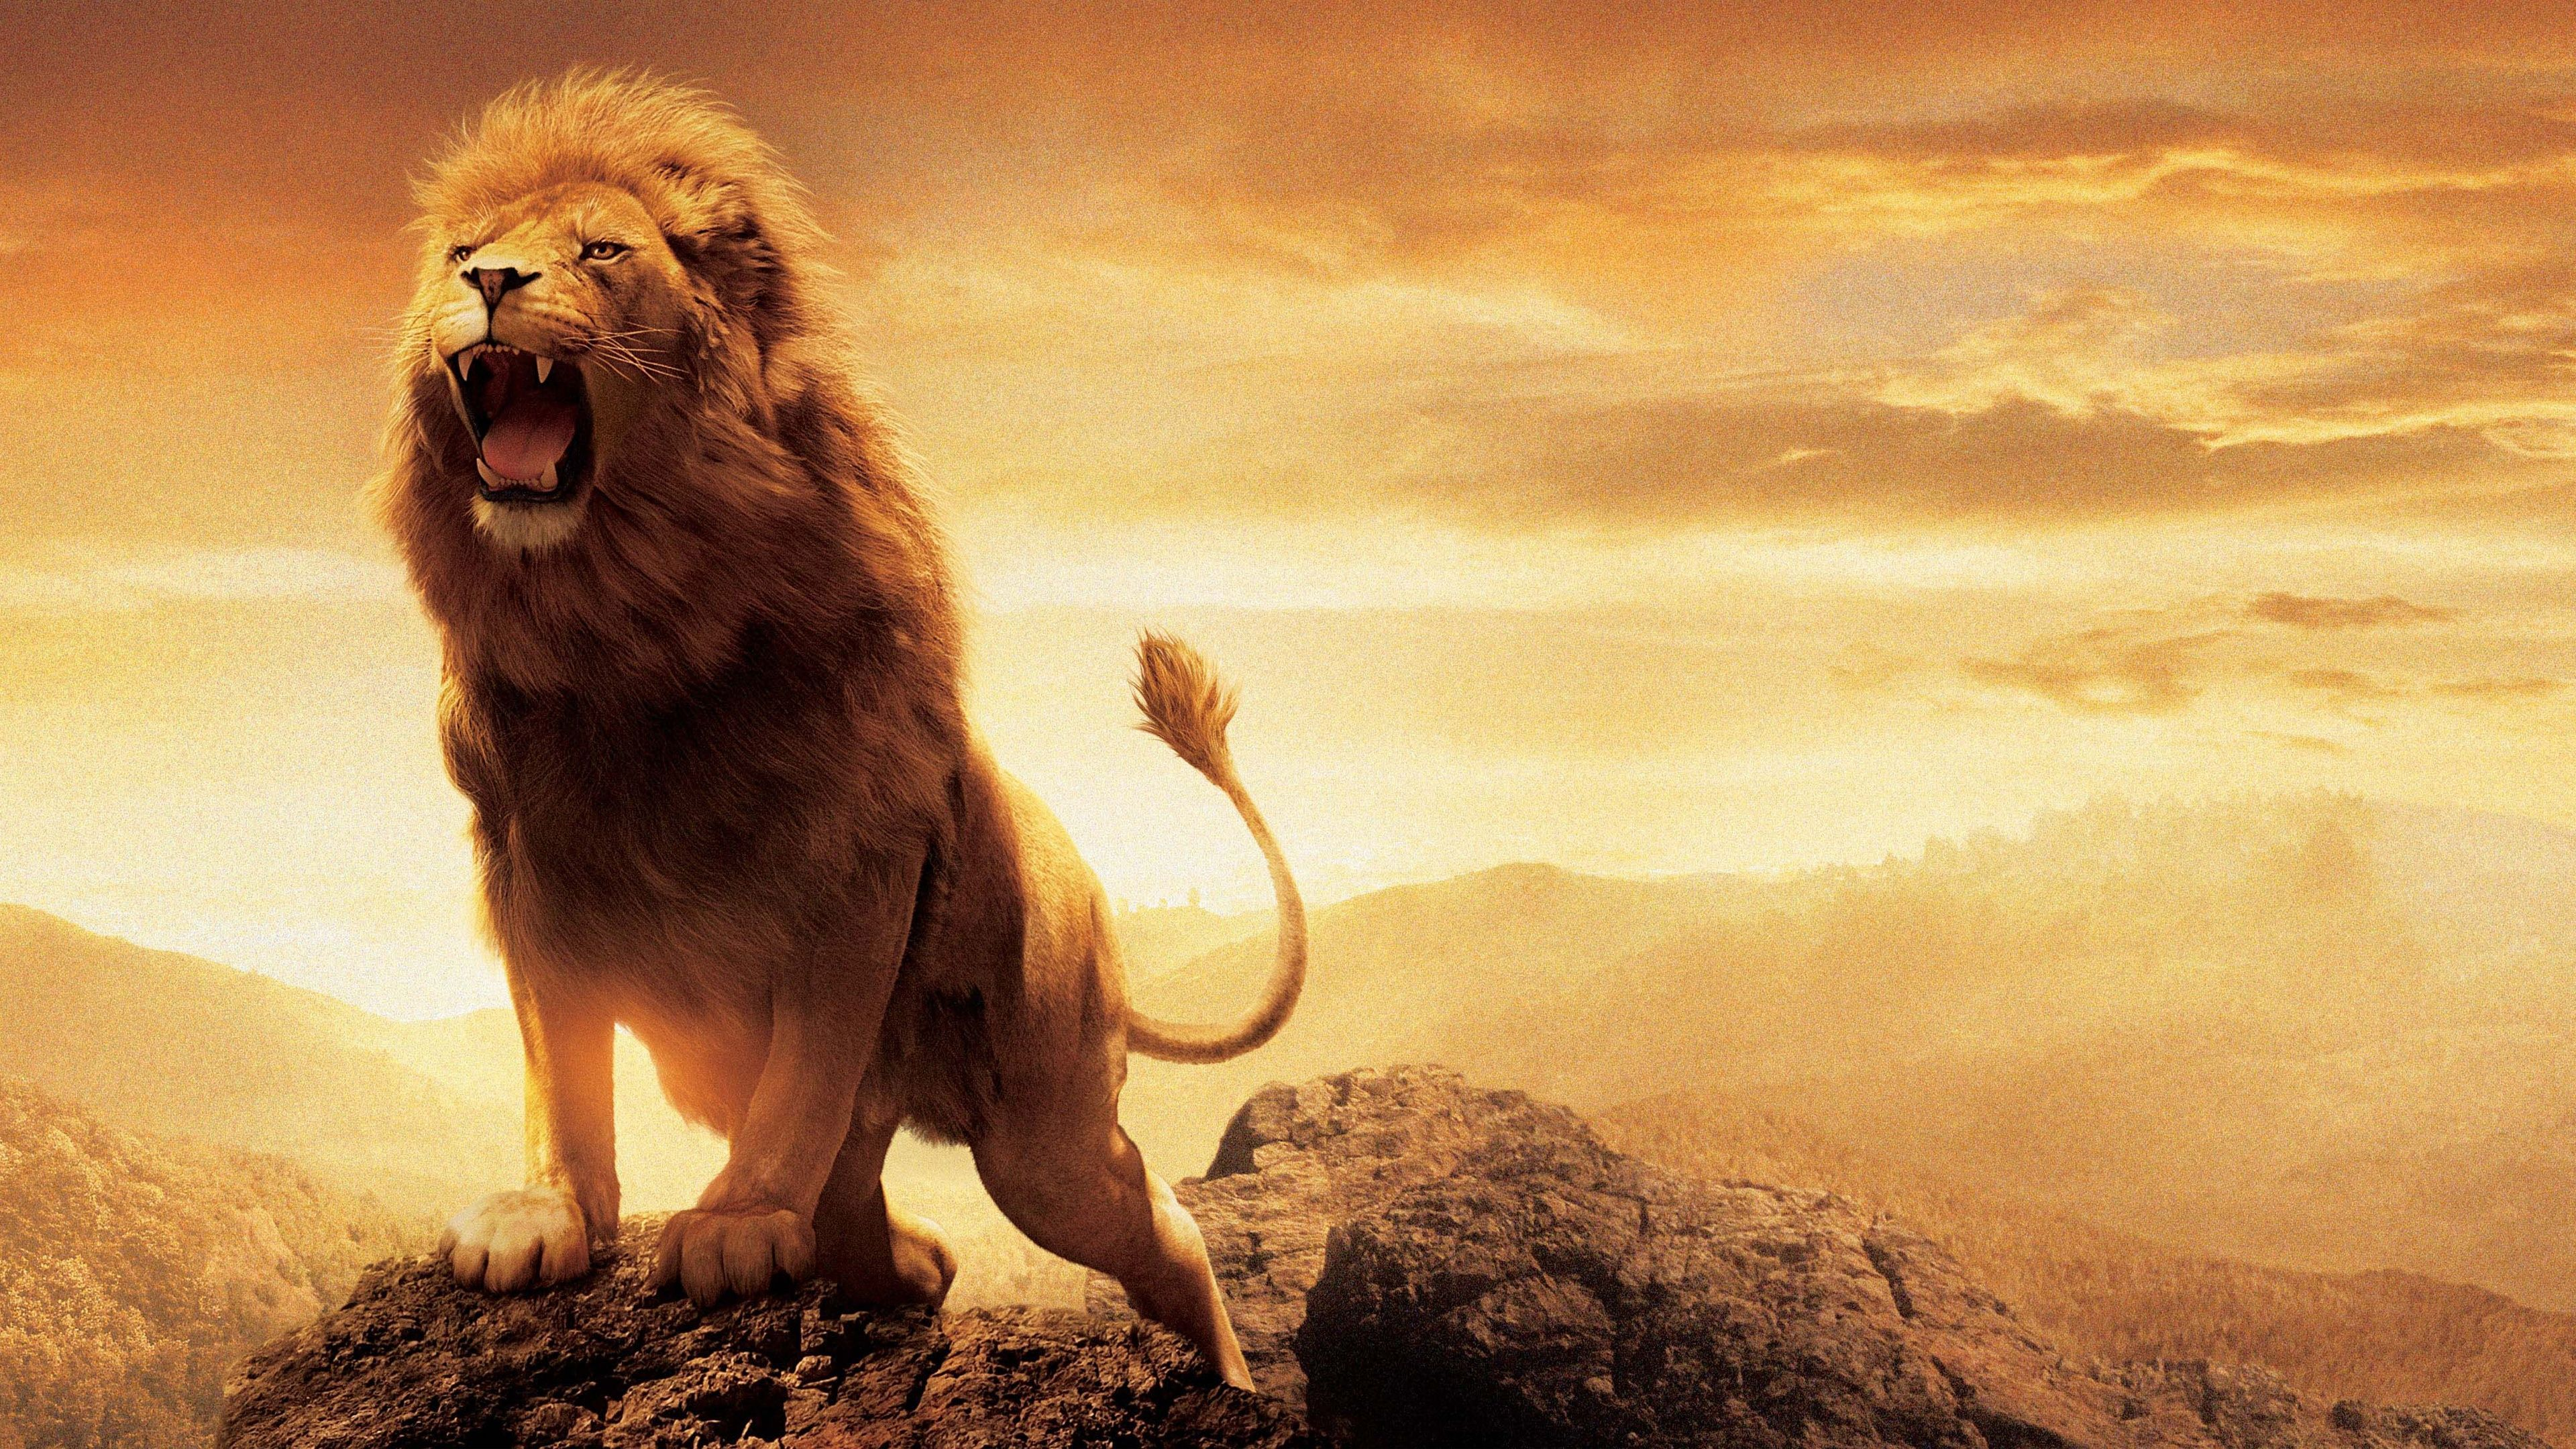 Wallpapers Tagged With Lion Lion Hd Wallpapers Page 1 Lion Images Lion Hd Wallpaper Lions Photos